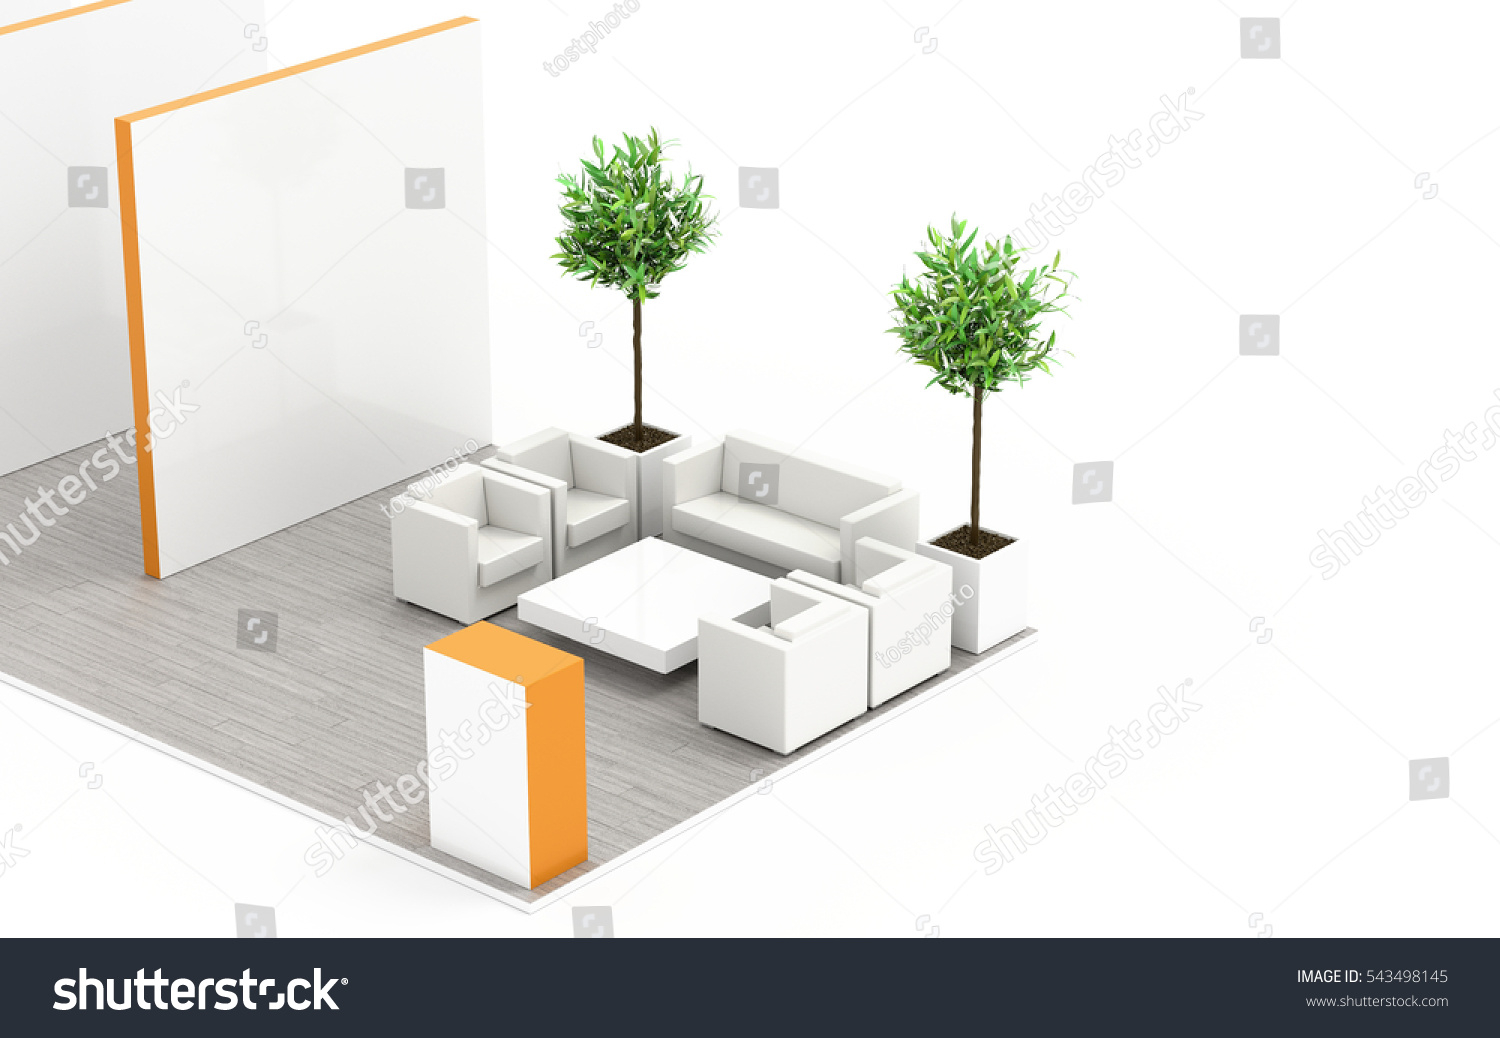 D Exhibition Booth Model : Exhibition stand on white stock illustration illustration of